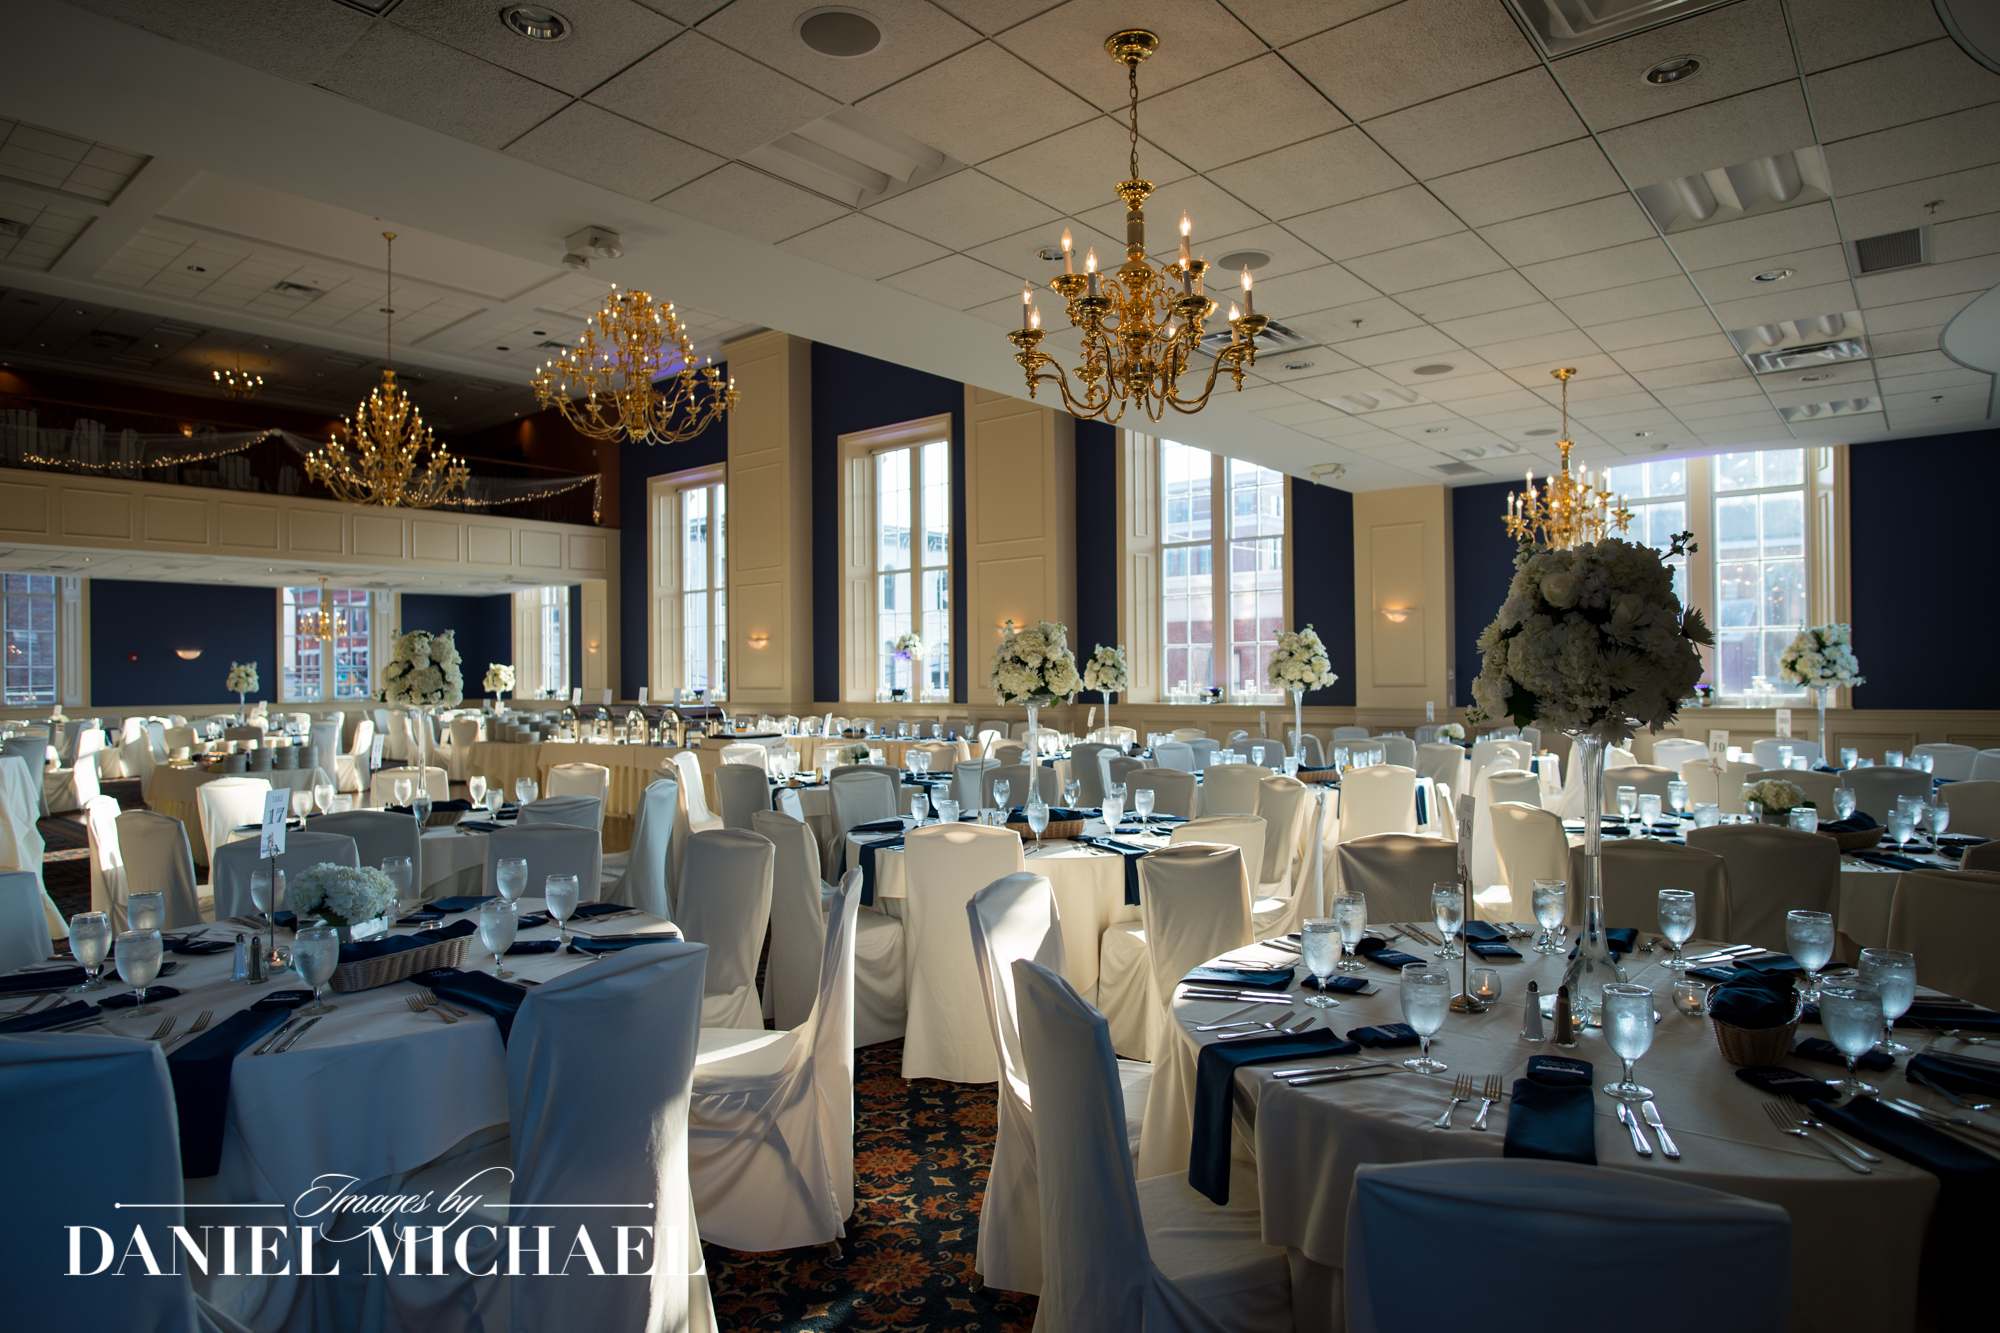 The Grand McHales Wedding Venue